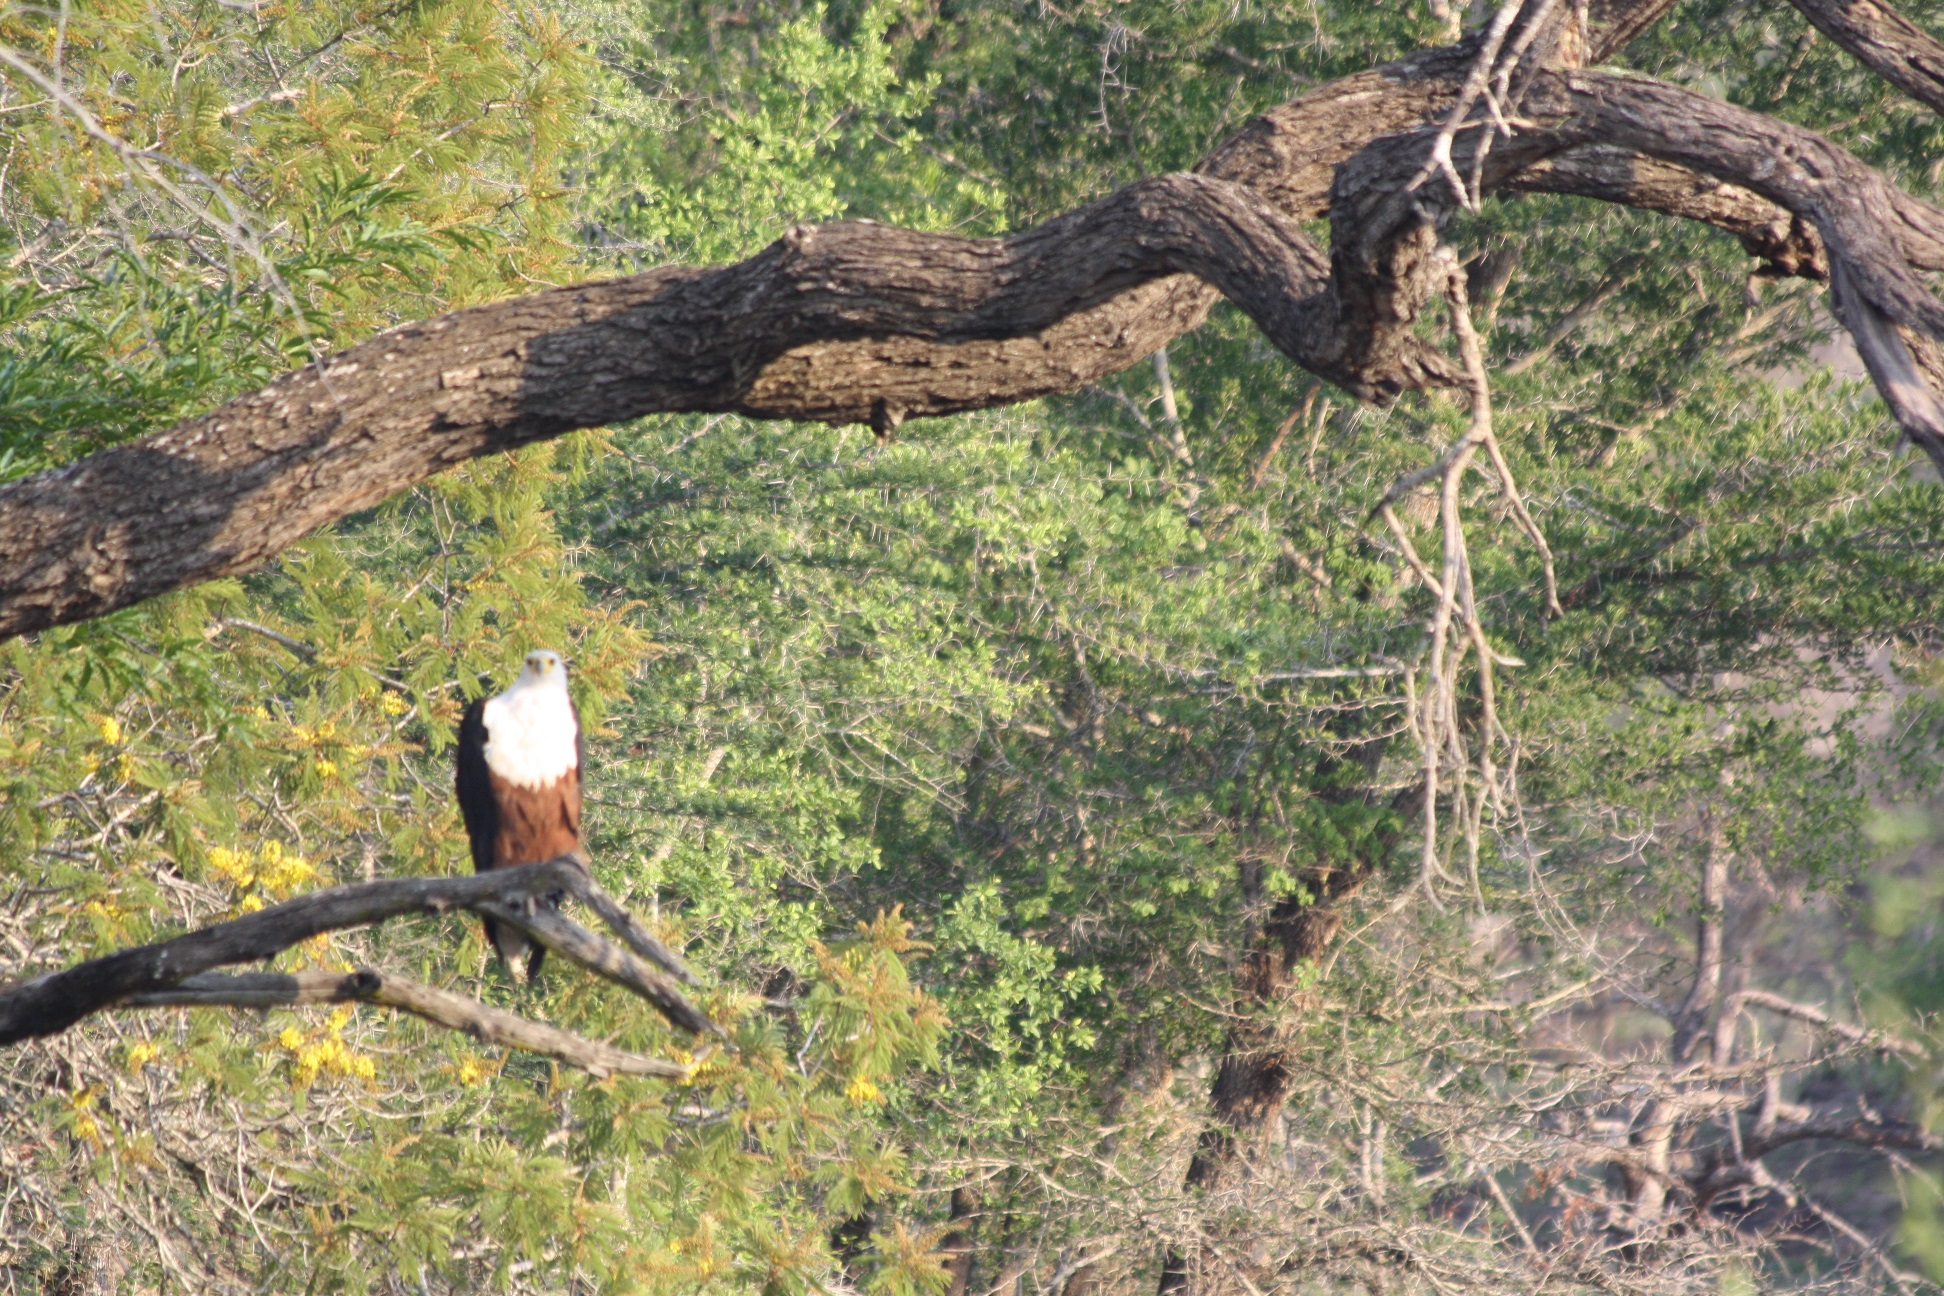 The majestic Fish Eagle